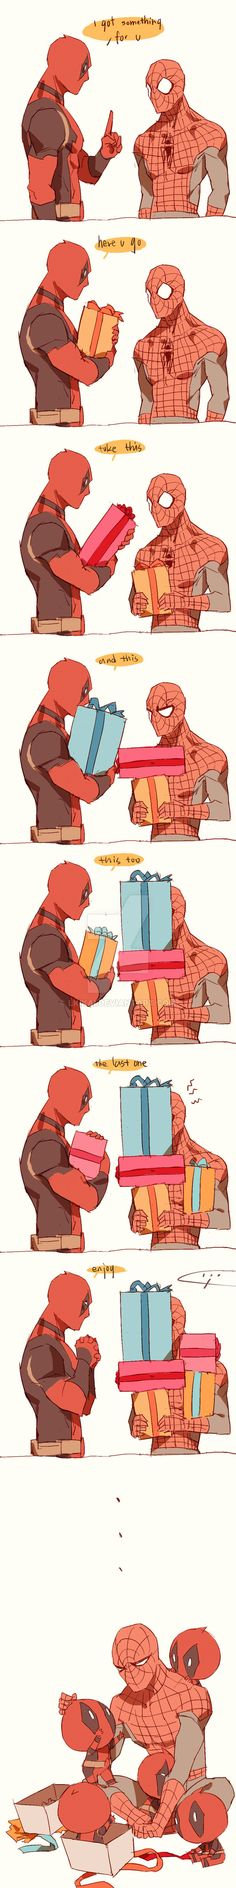 spideypool208 by LKiKAi.deviantart.com on @DeviantArt